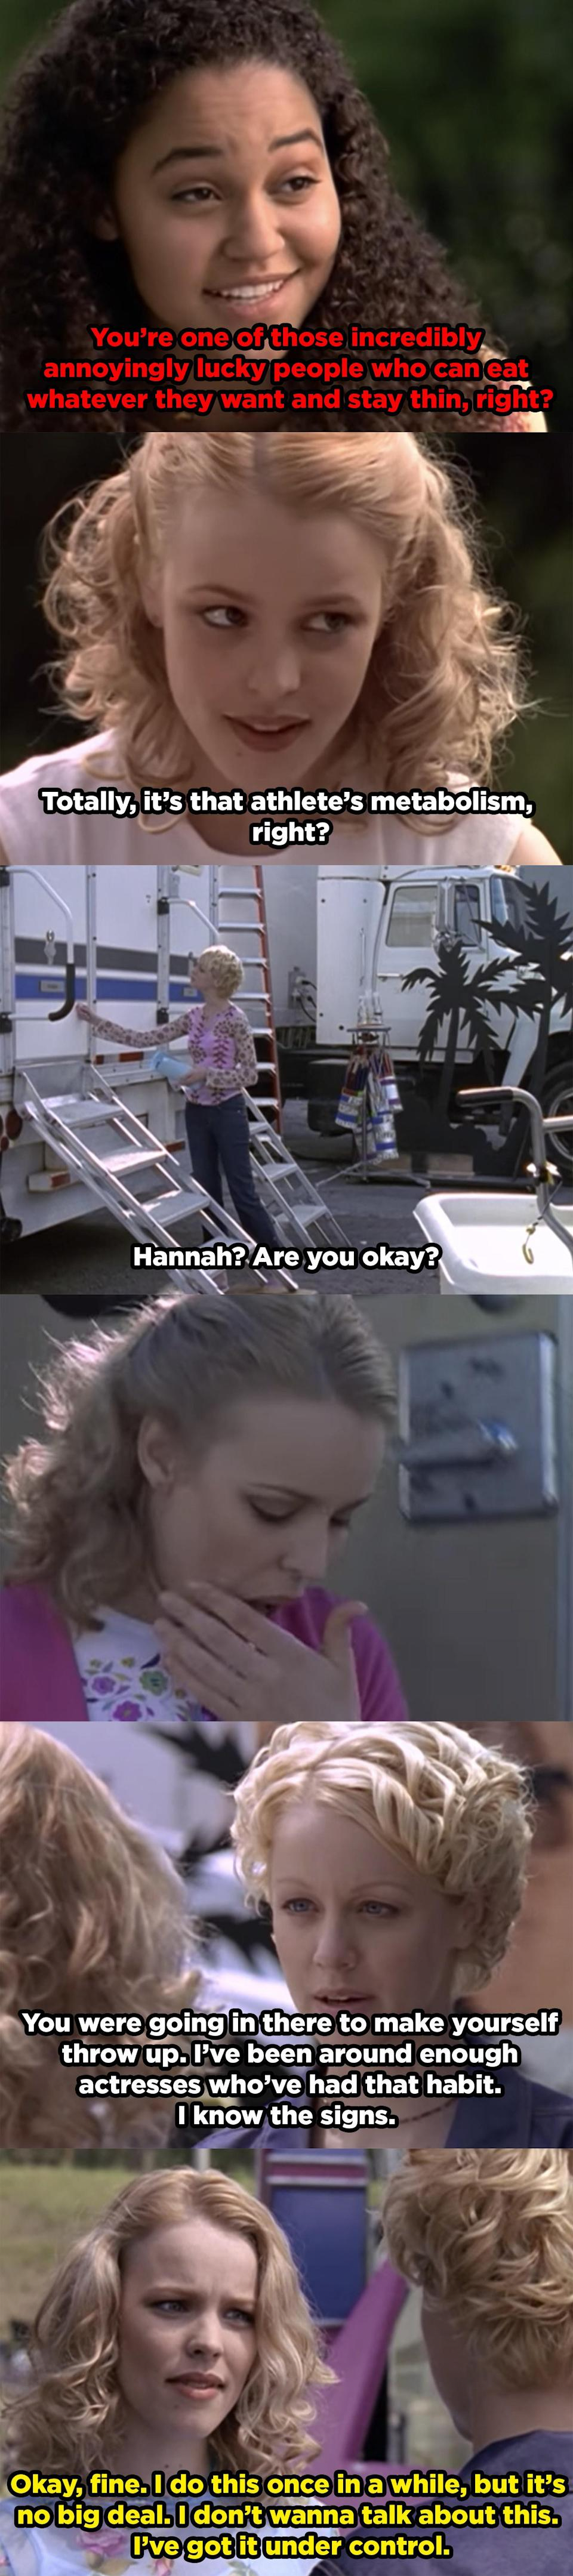 Riley sees Hannah come out of the bathroom after throwing up and confronts her. Hannah says that she does have bulimia, but has it under control.